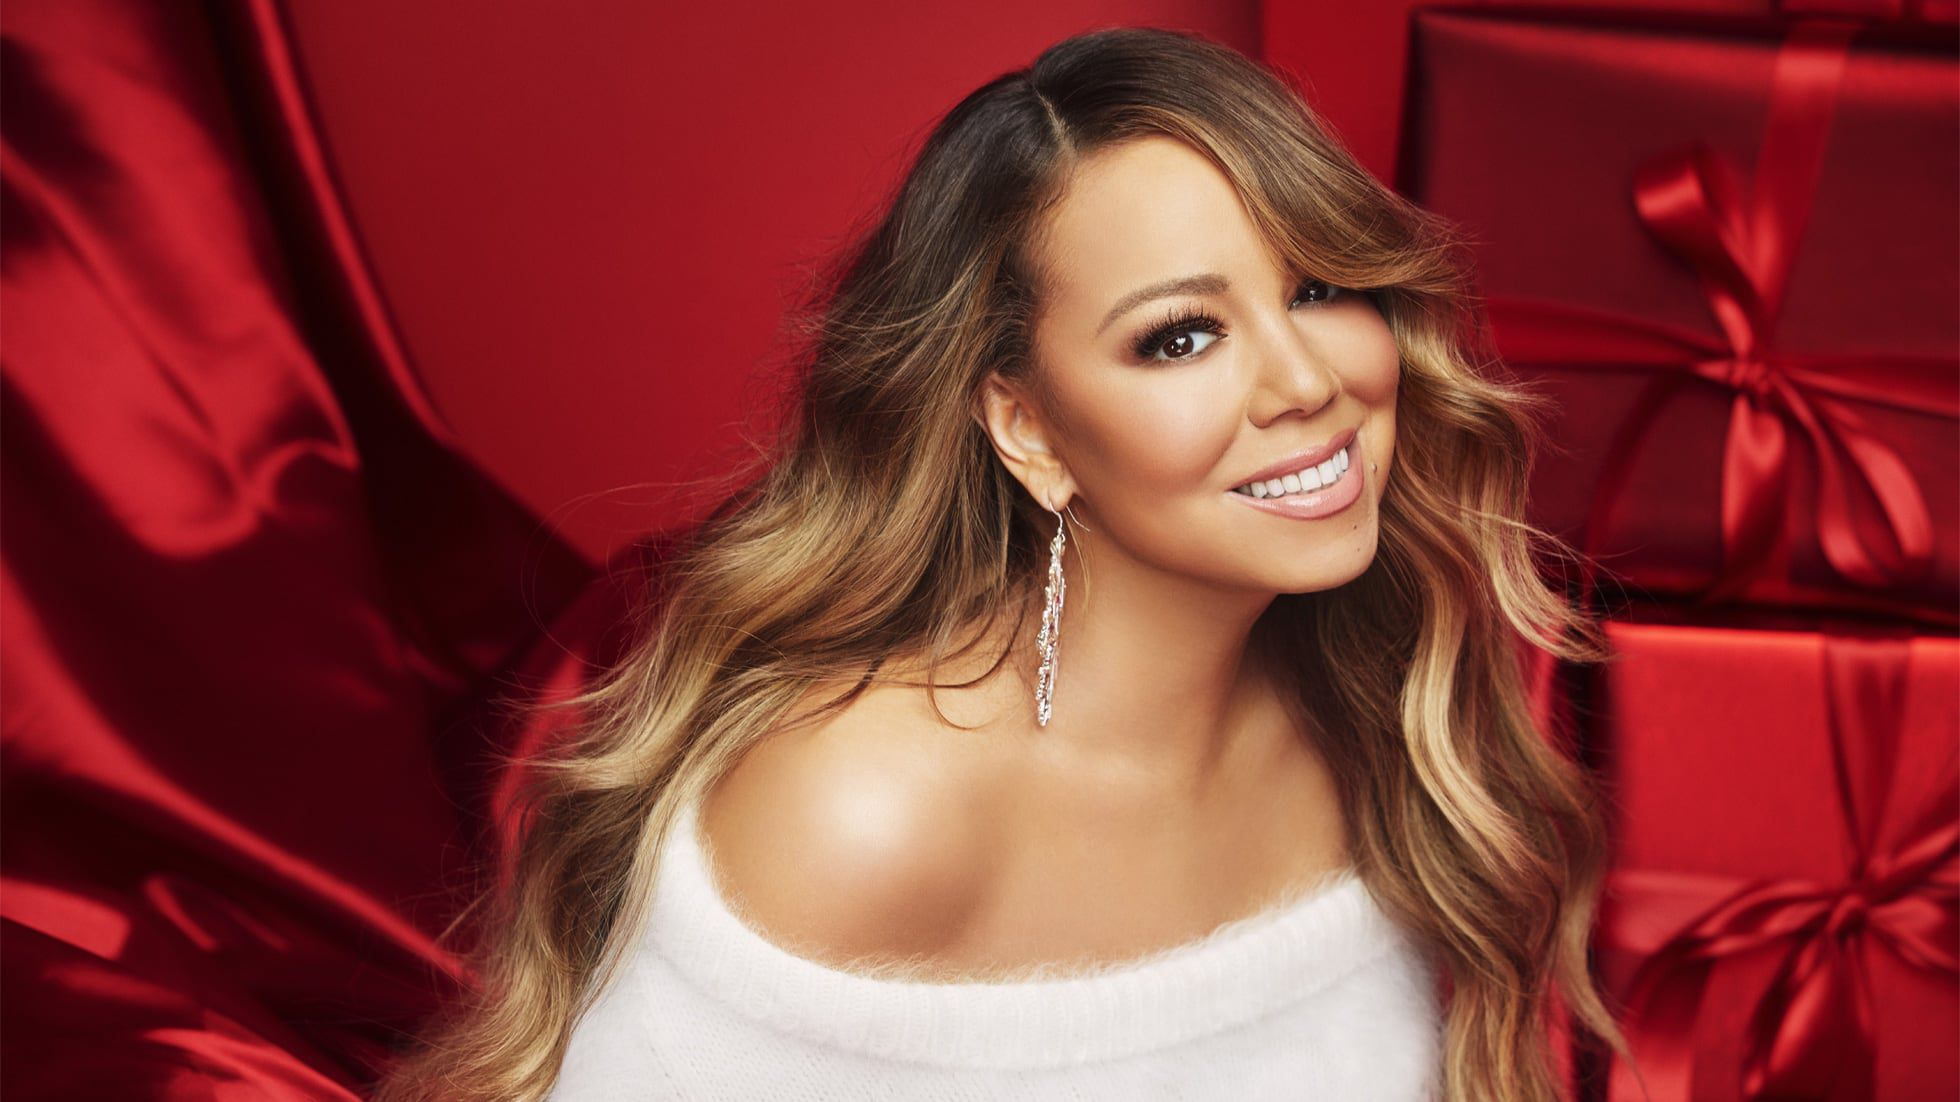 Holiday Special With Mariah Carey Coming to Apple TV+